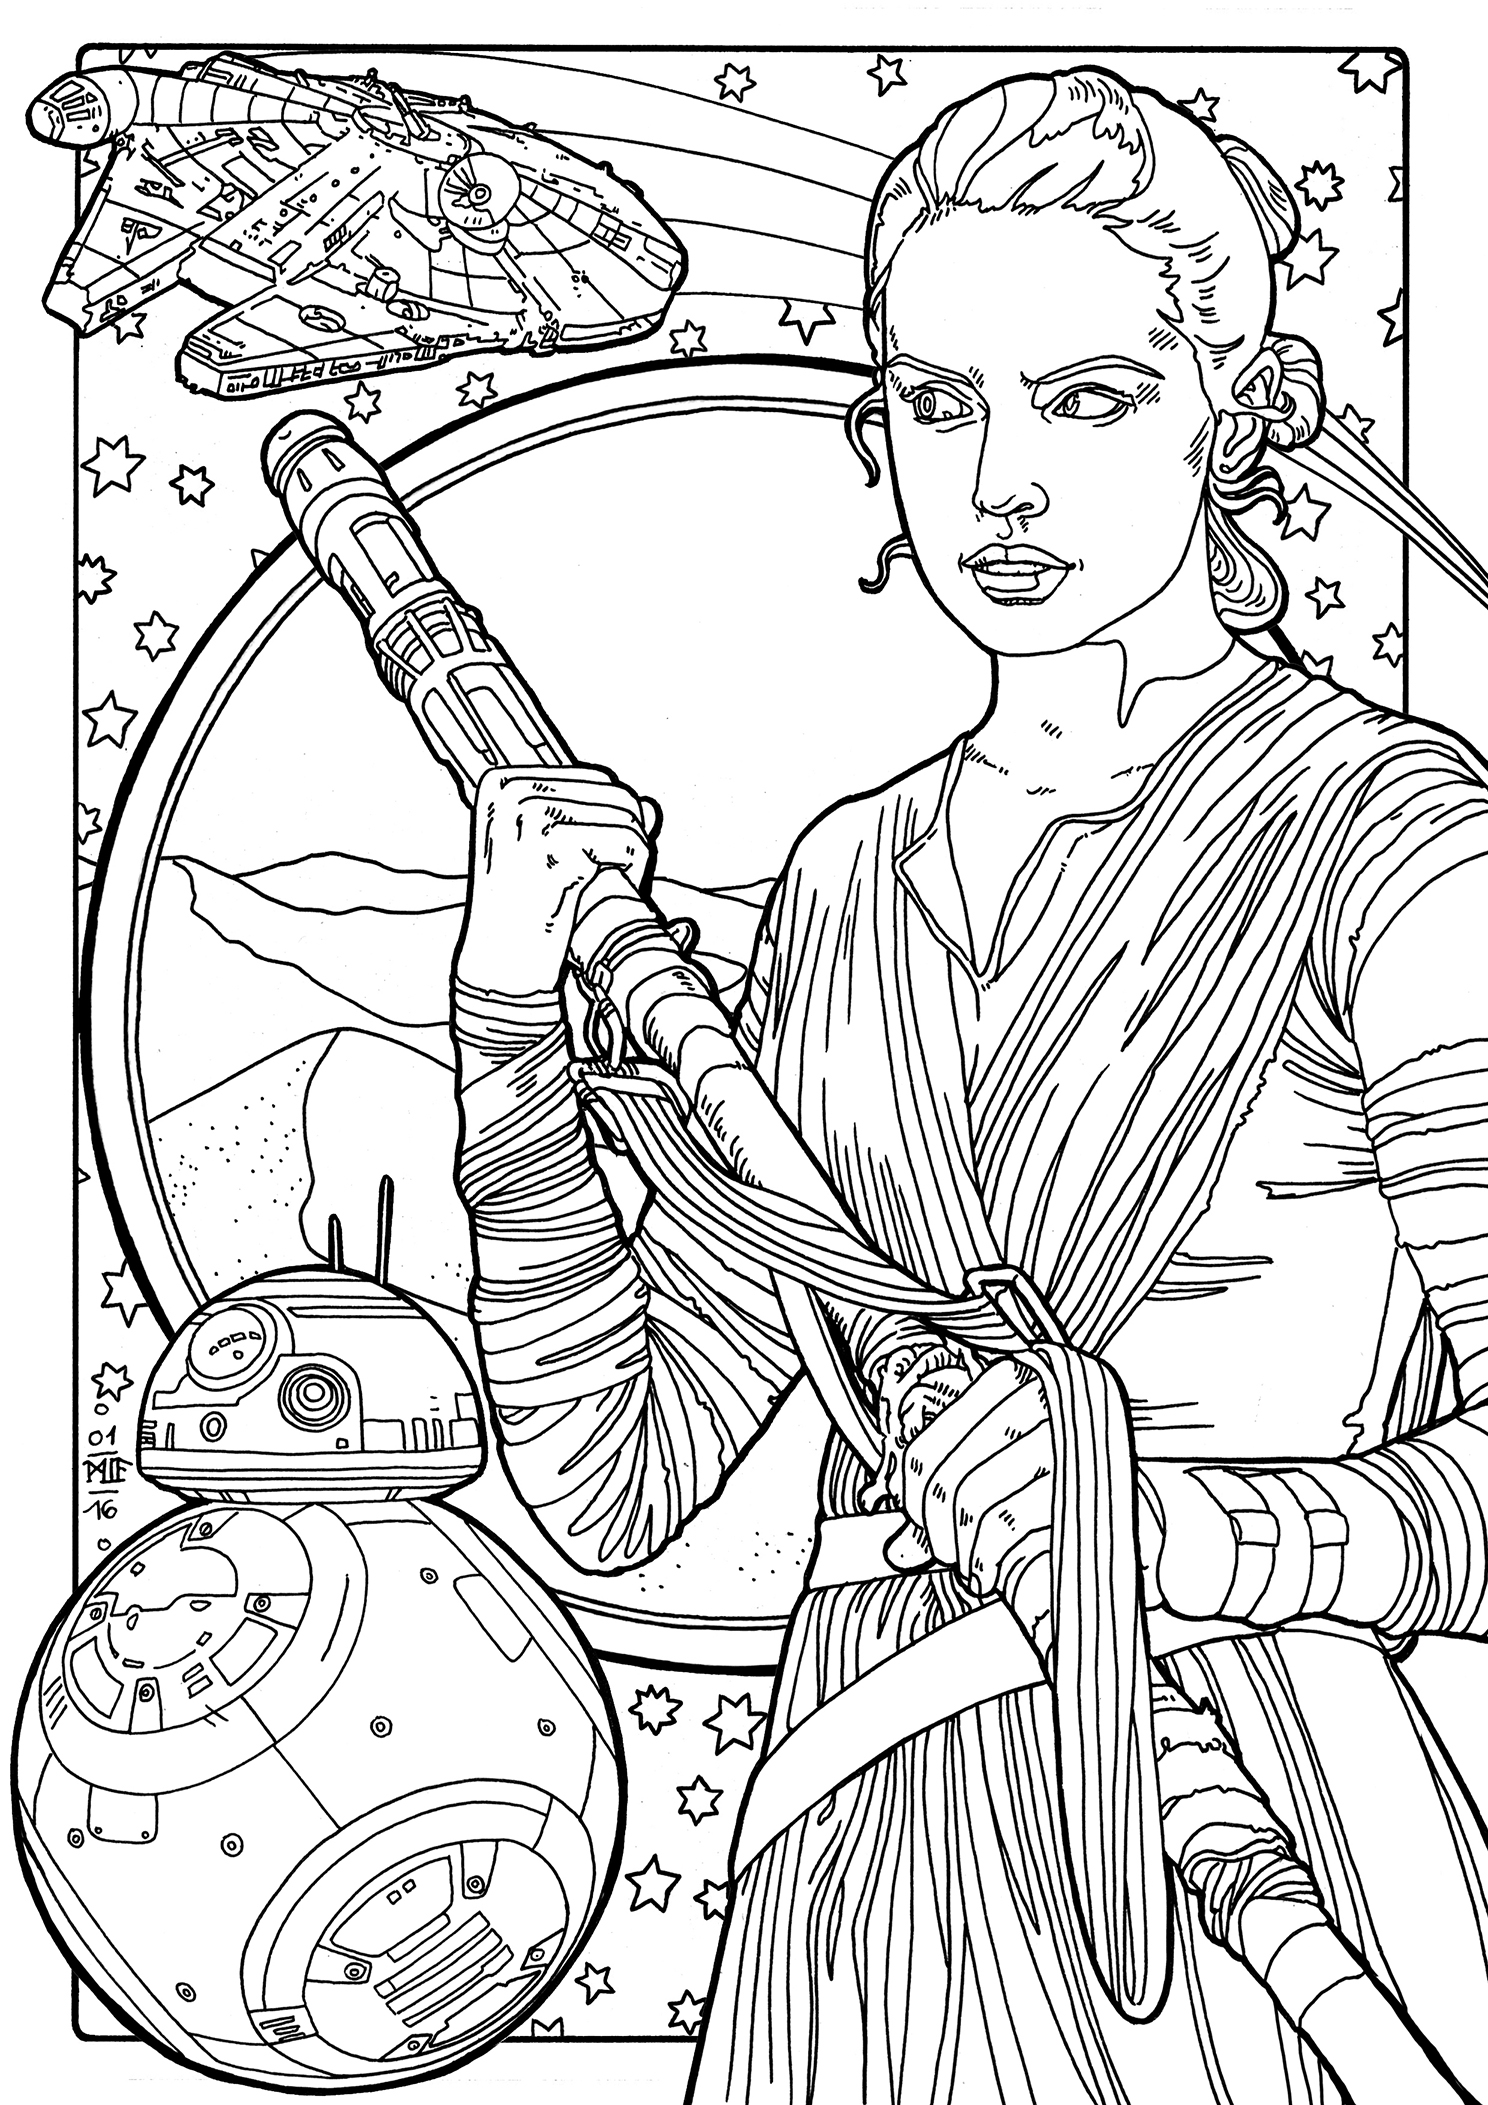 Star Wars Stormtrooper Coloring Pages Printable Coloring Coloriage ...